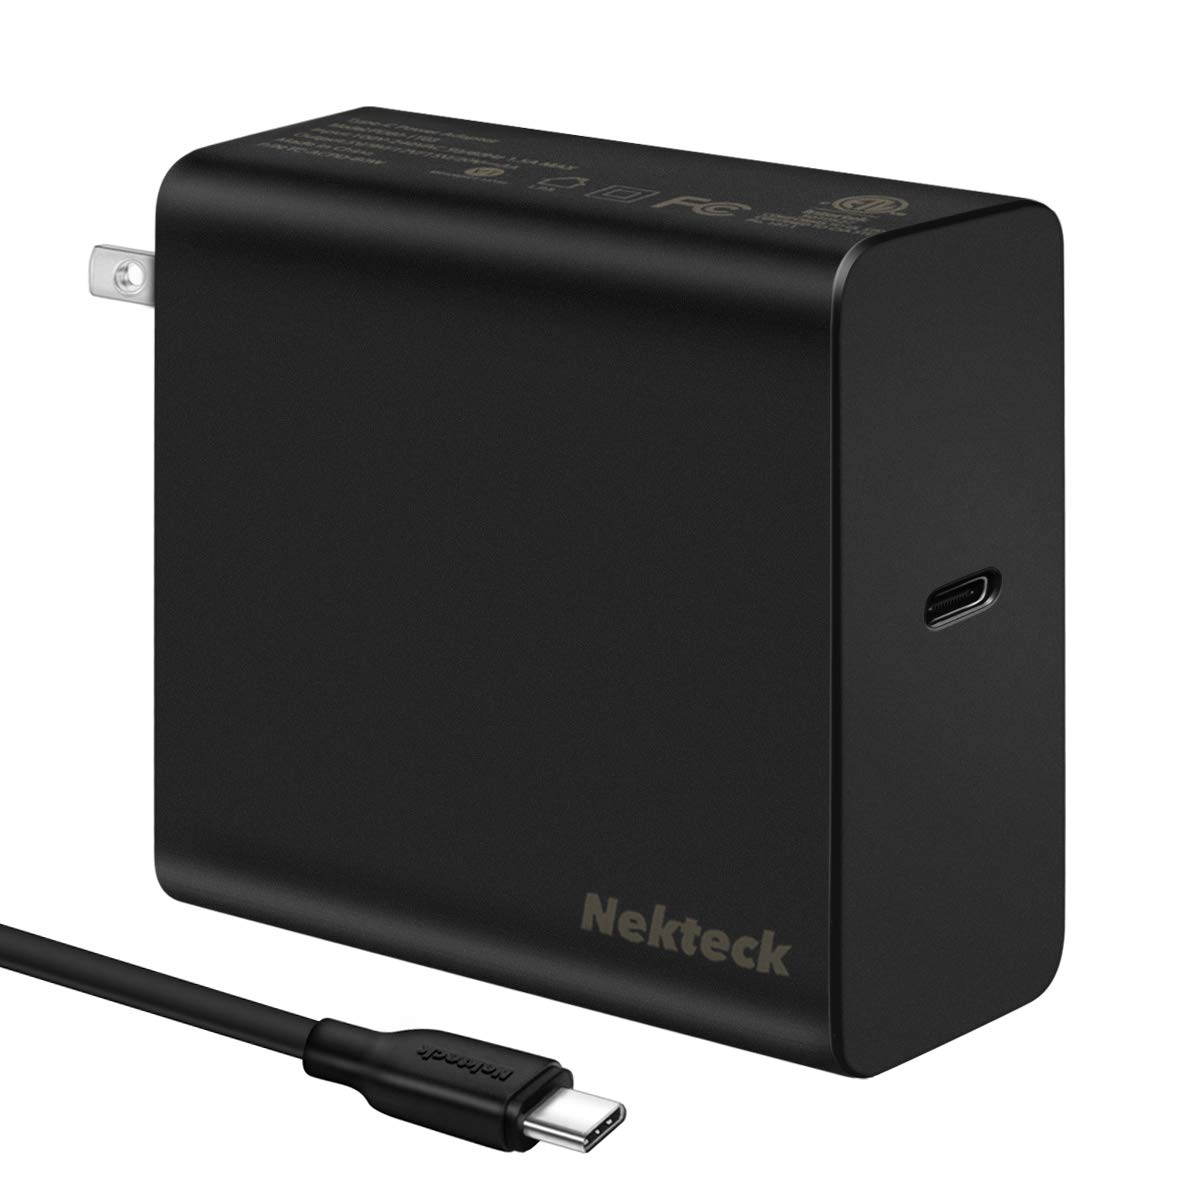 USB C Wall Charger, Nekteck 60W Type C Laptop Power Adapter with Power Delivery for MacBook Pro/Air 2018, HP Spectre, Dell Xps, Matebook, Ipad Pro, iPhone, Galaxy, Pixel, Nintendo Switch, and More